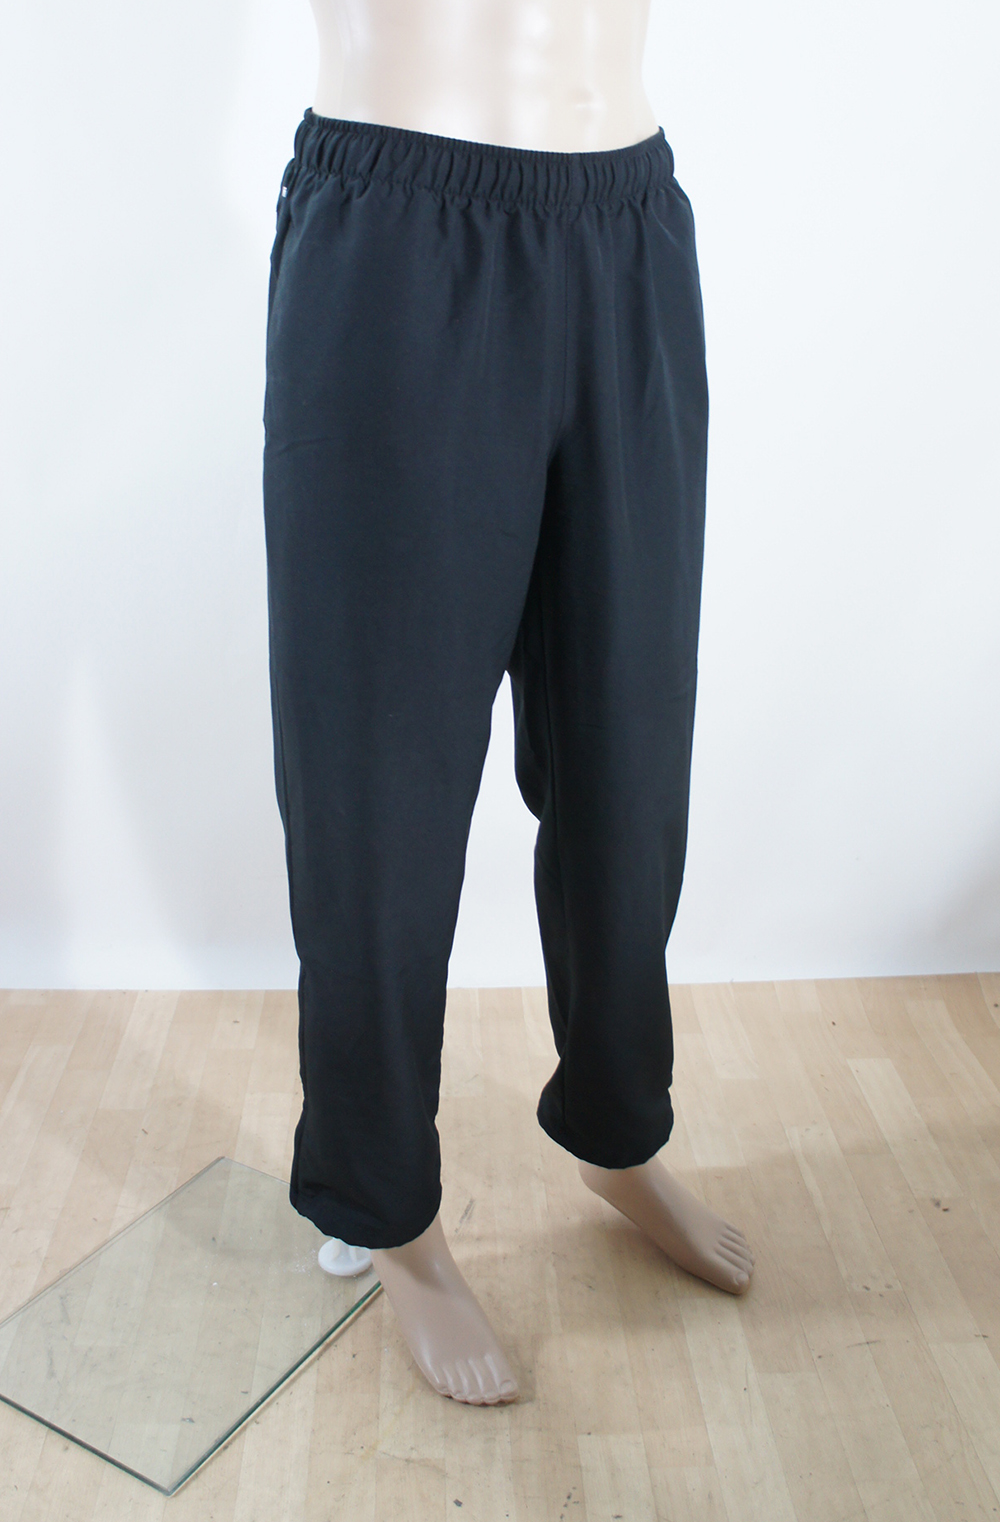 adidas sporthose herren hose jogginghose gr xl schwarz ebay. Black Bedroom Furniture Sets. Home Design Ideas